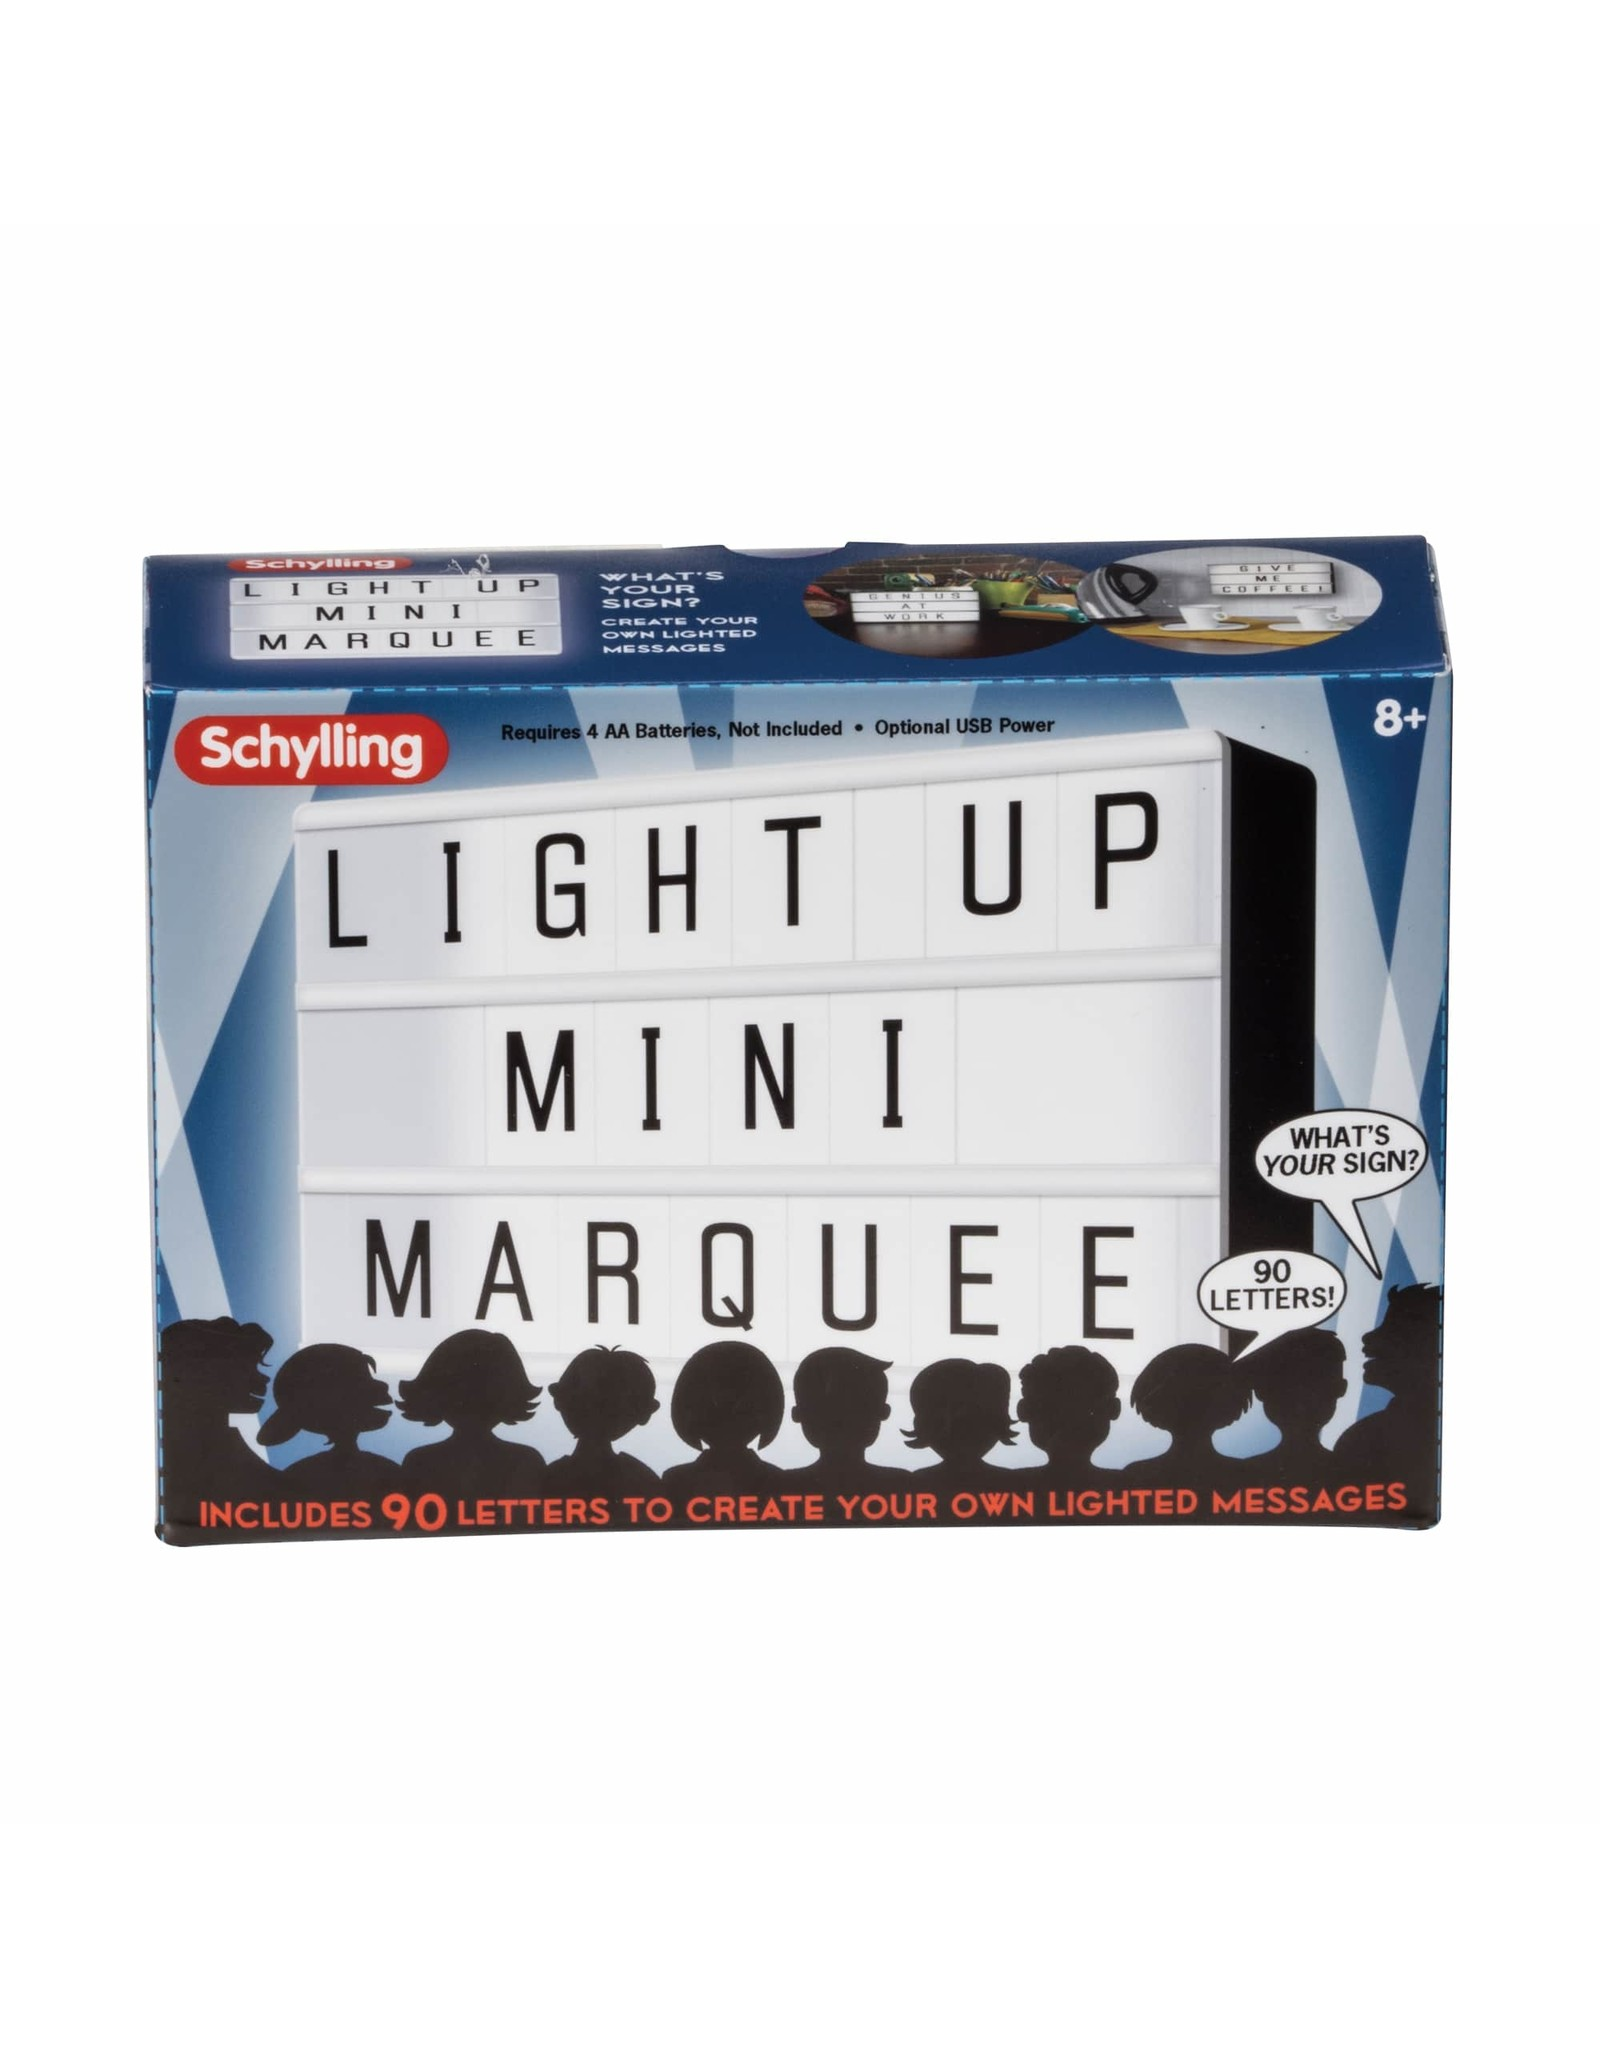 Schylling Light Up Mini Marquee